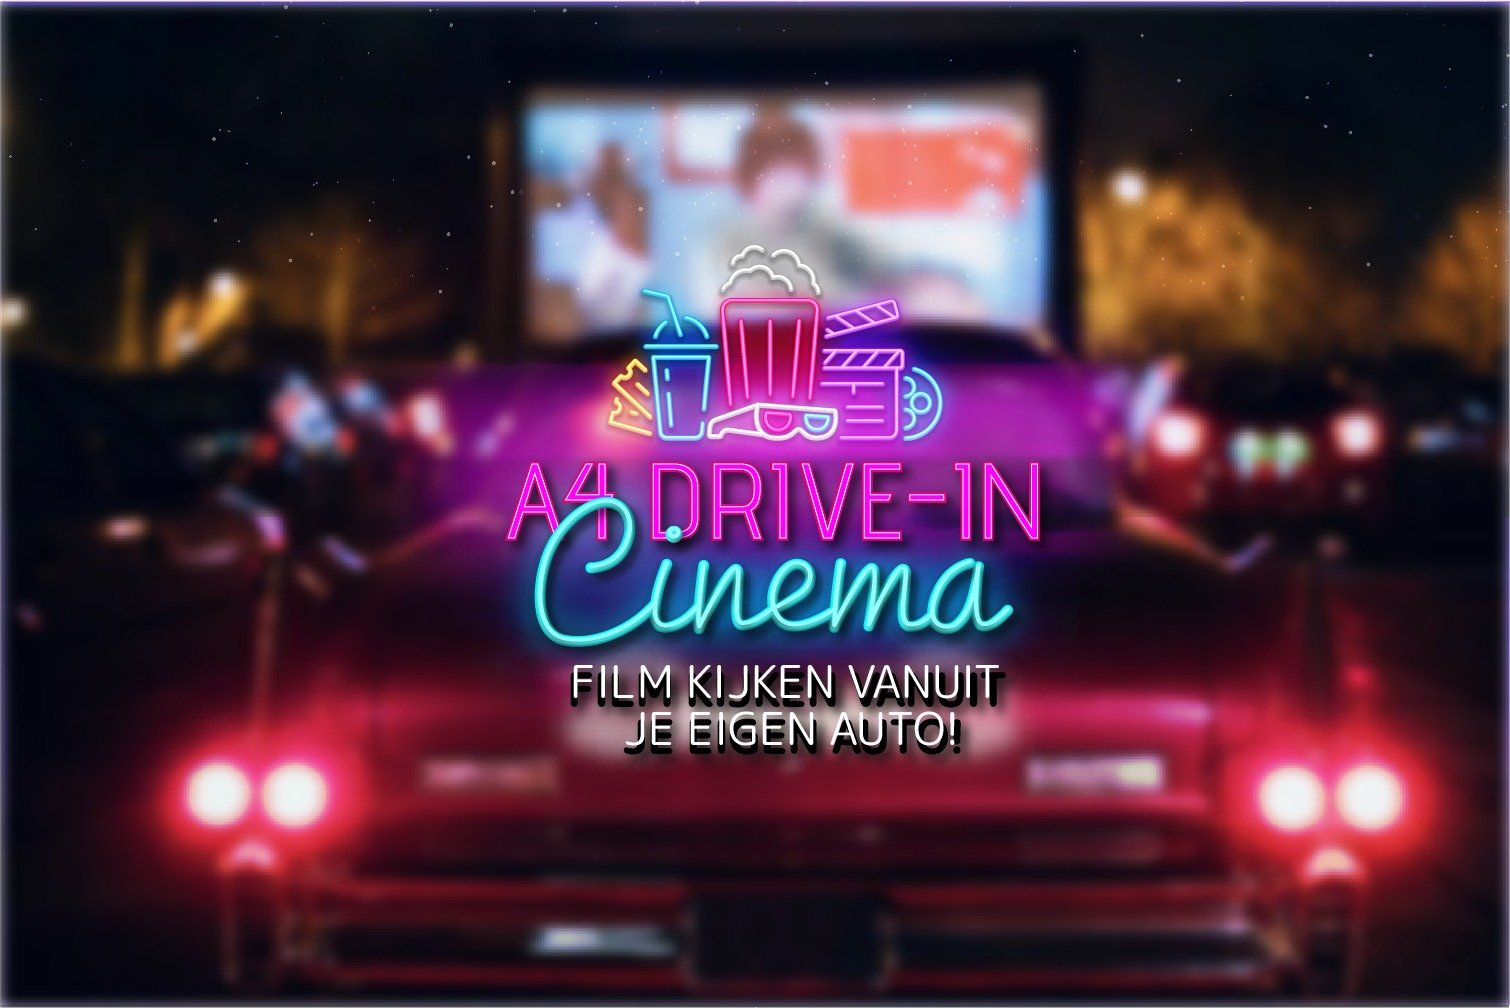 Drive-in bioscoop: Madagascar 3